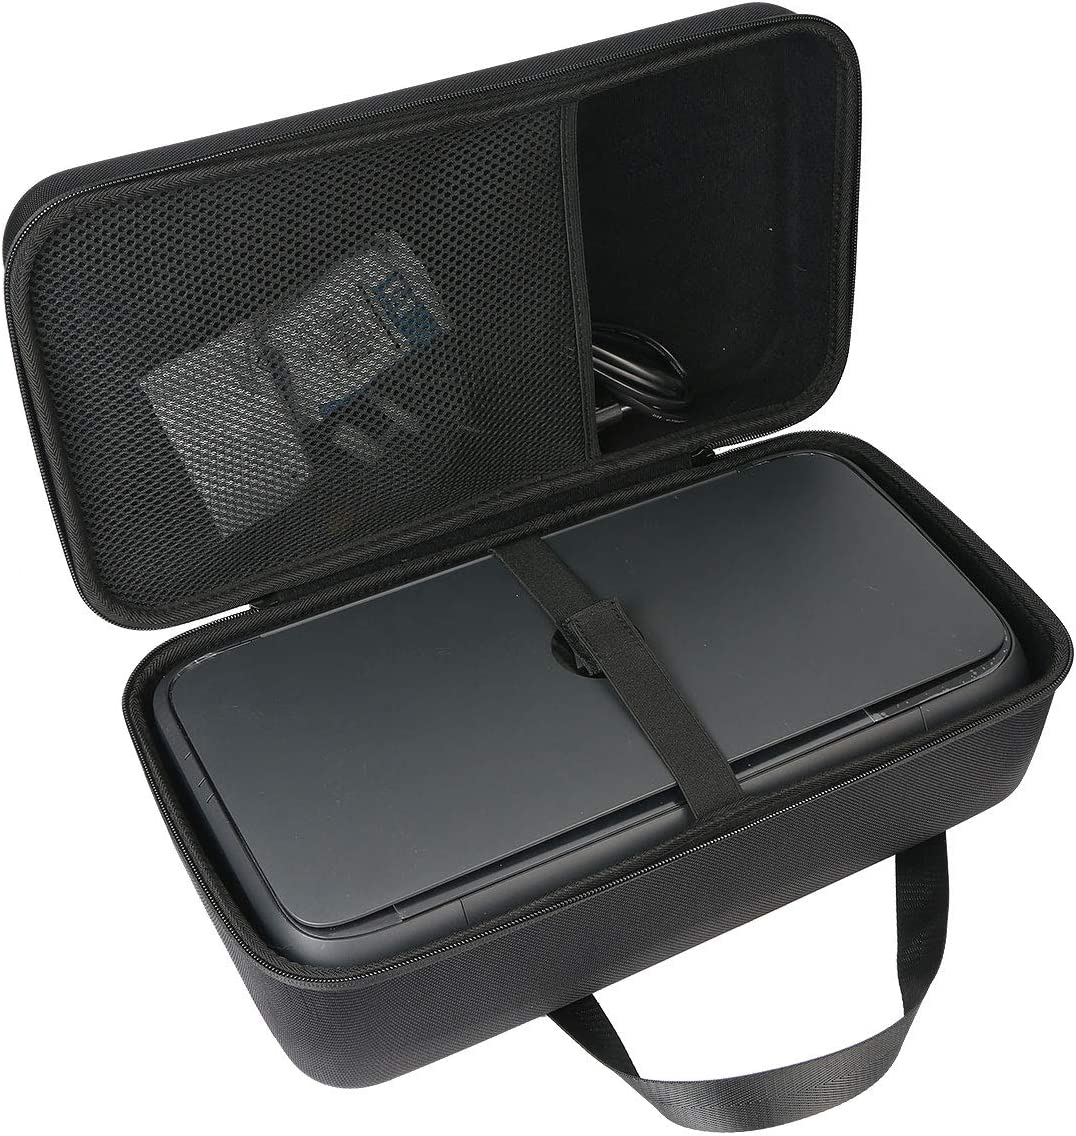 khanka Hard Travel Case Replacement for HP OfficeJet 250 All-in-One Portable Printer